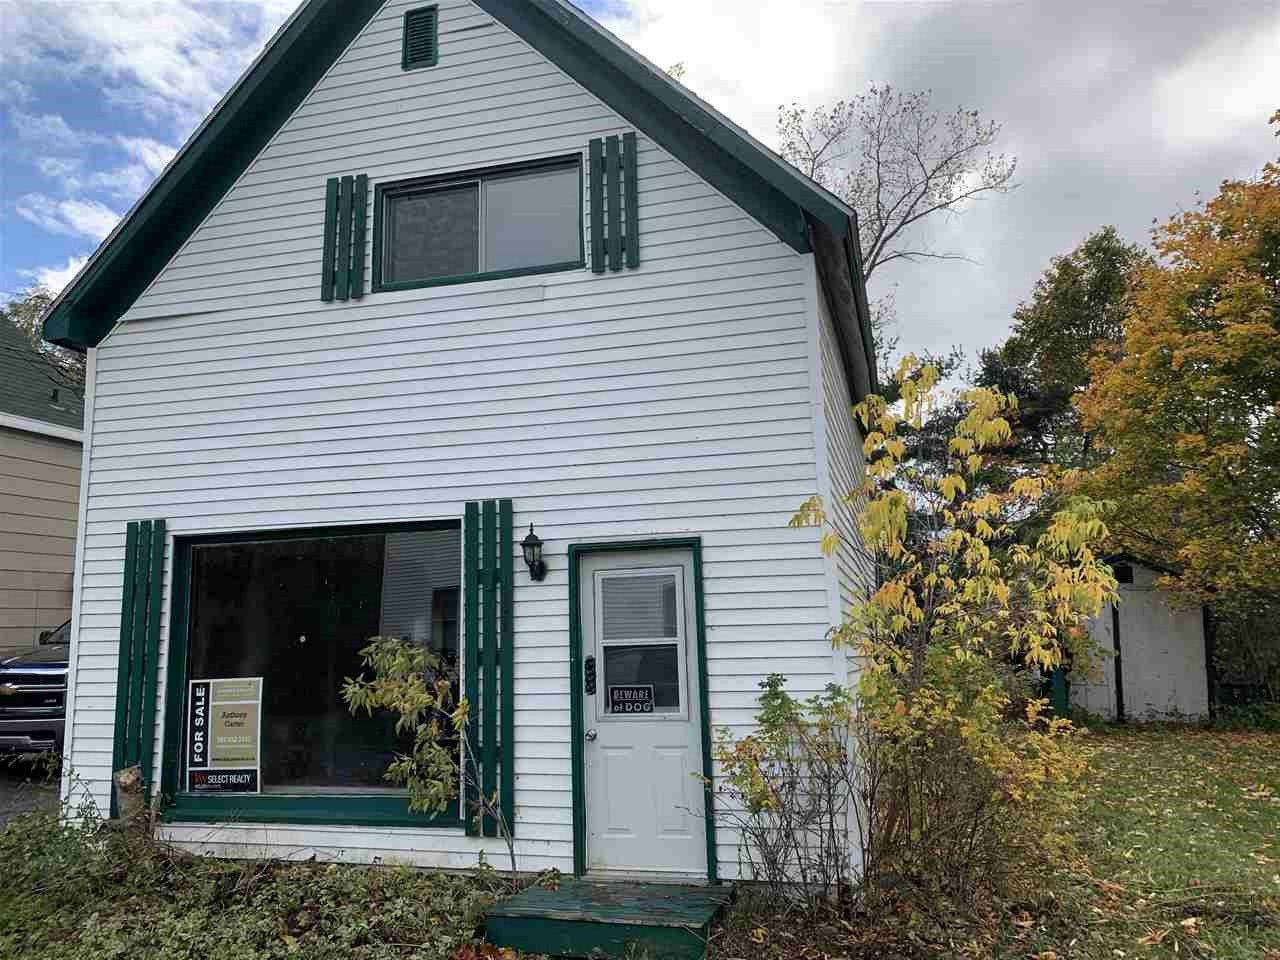 Main Photo: 1979 Ballart Street in Westville: 107-Trenton,Westville,Pictou Residential for sale (Northern Region)  : MLS®# 202022559